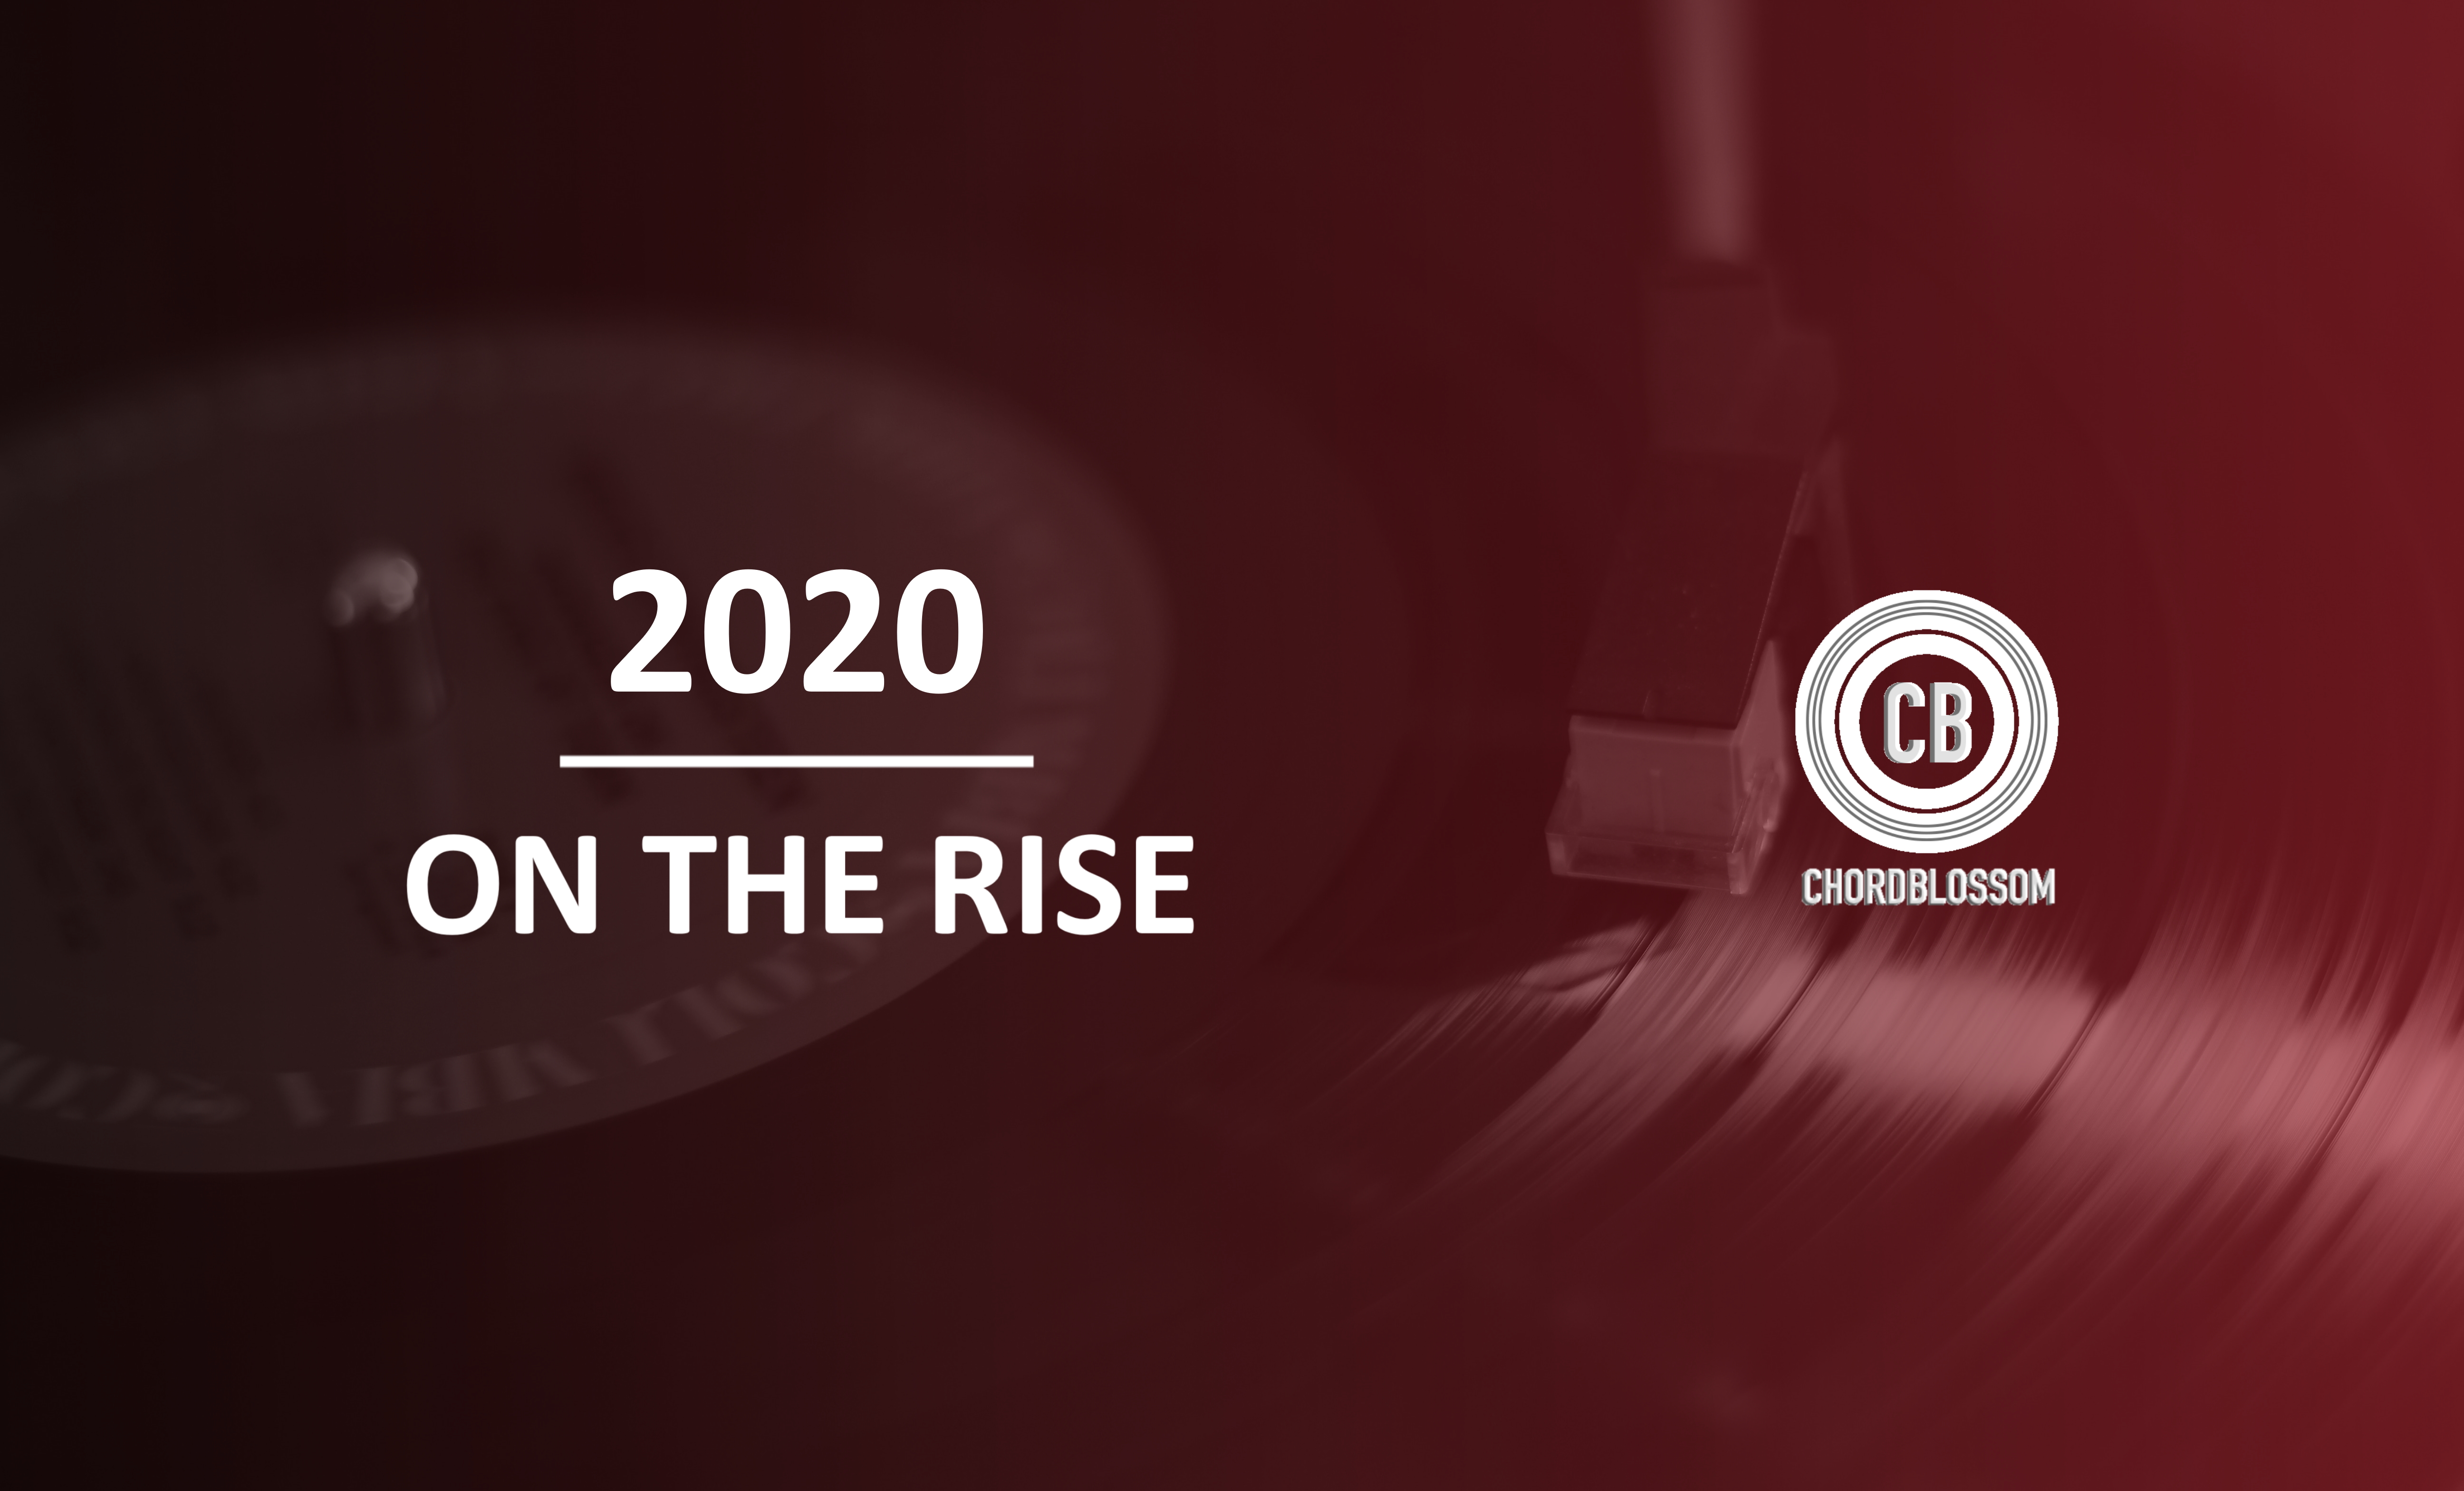 On The Rise 2020